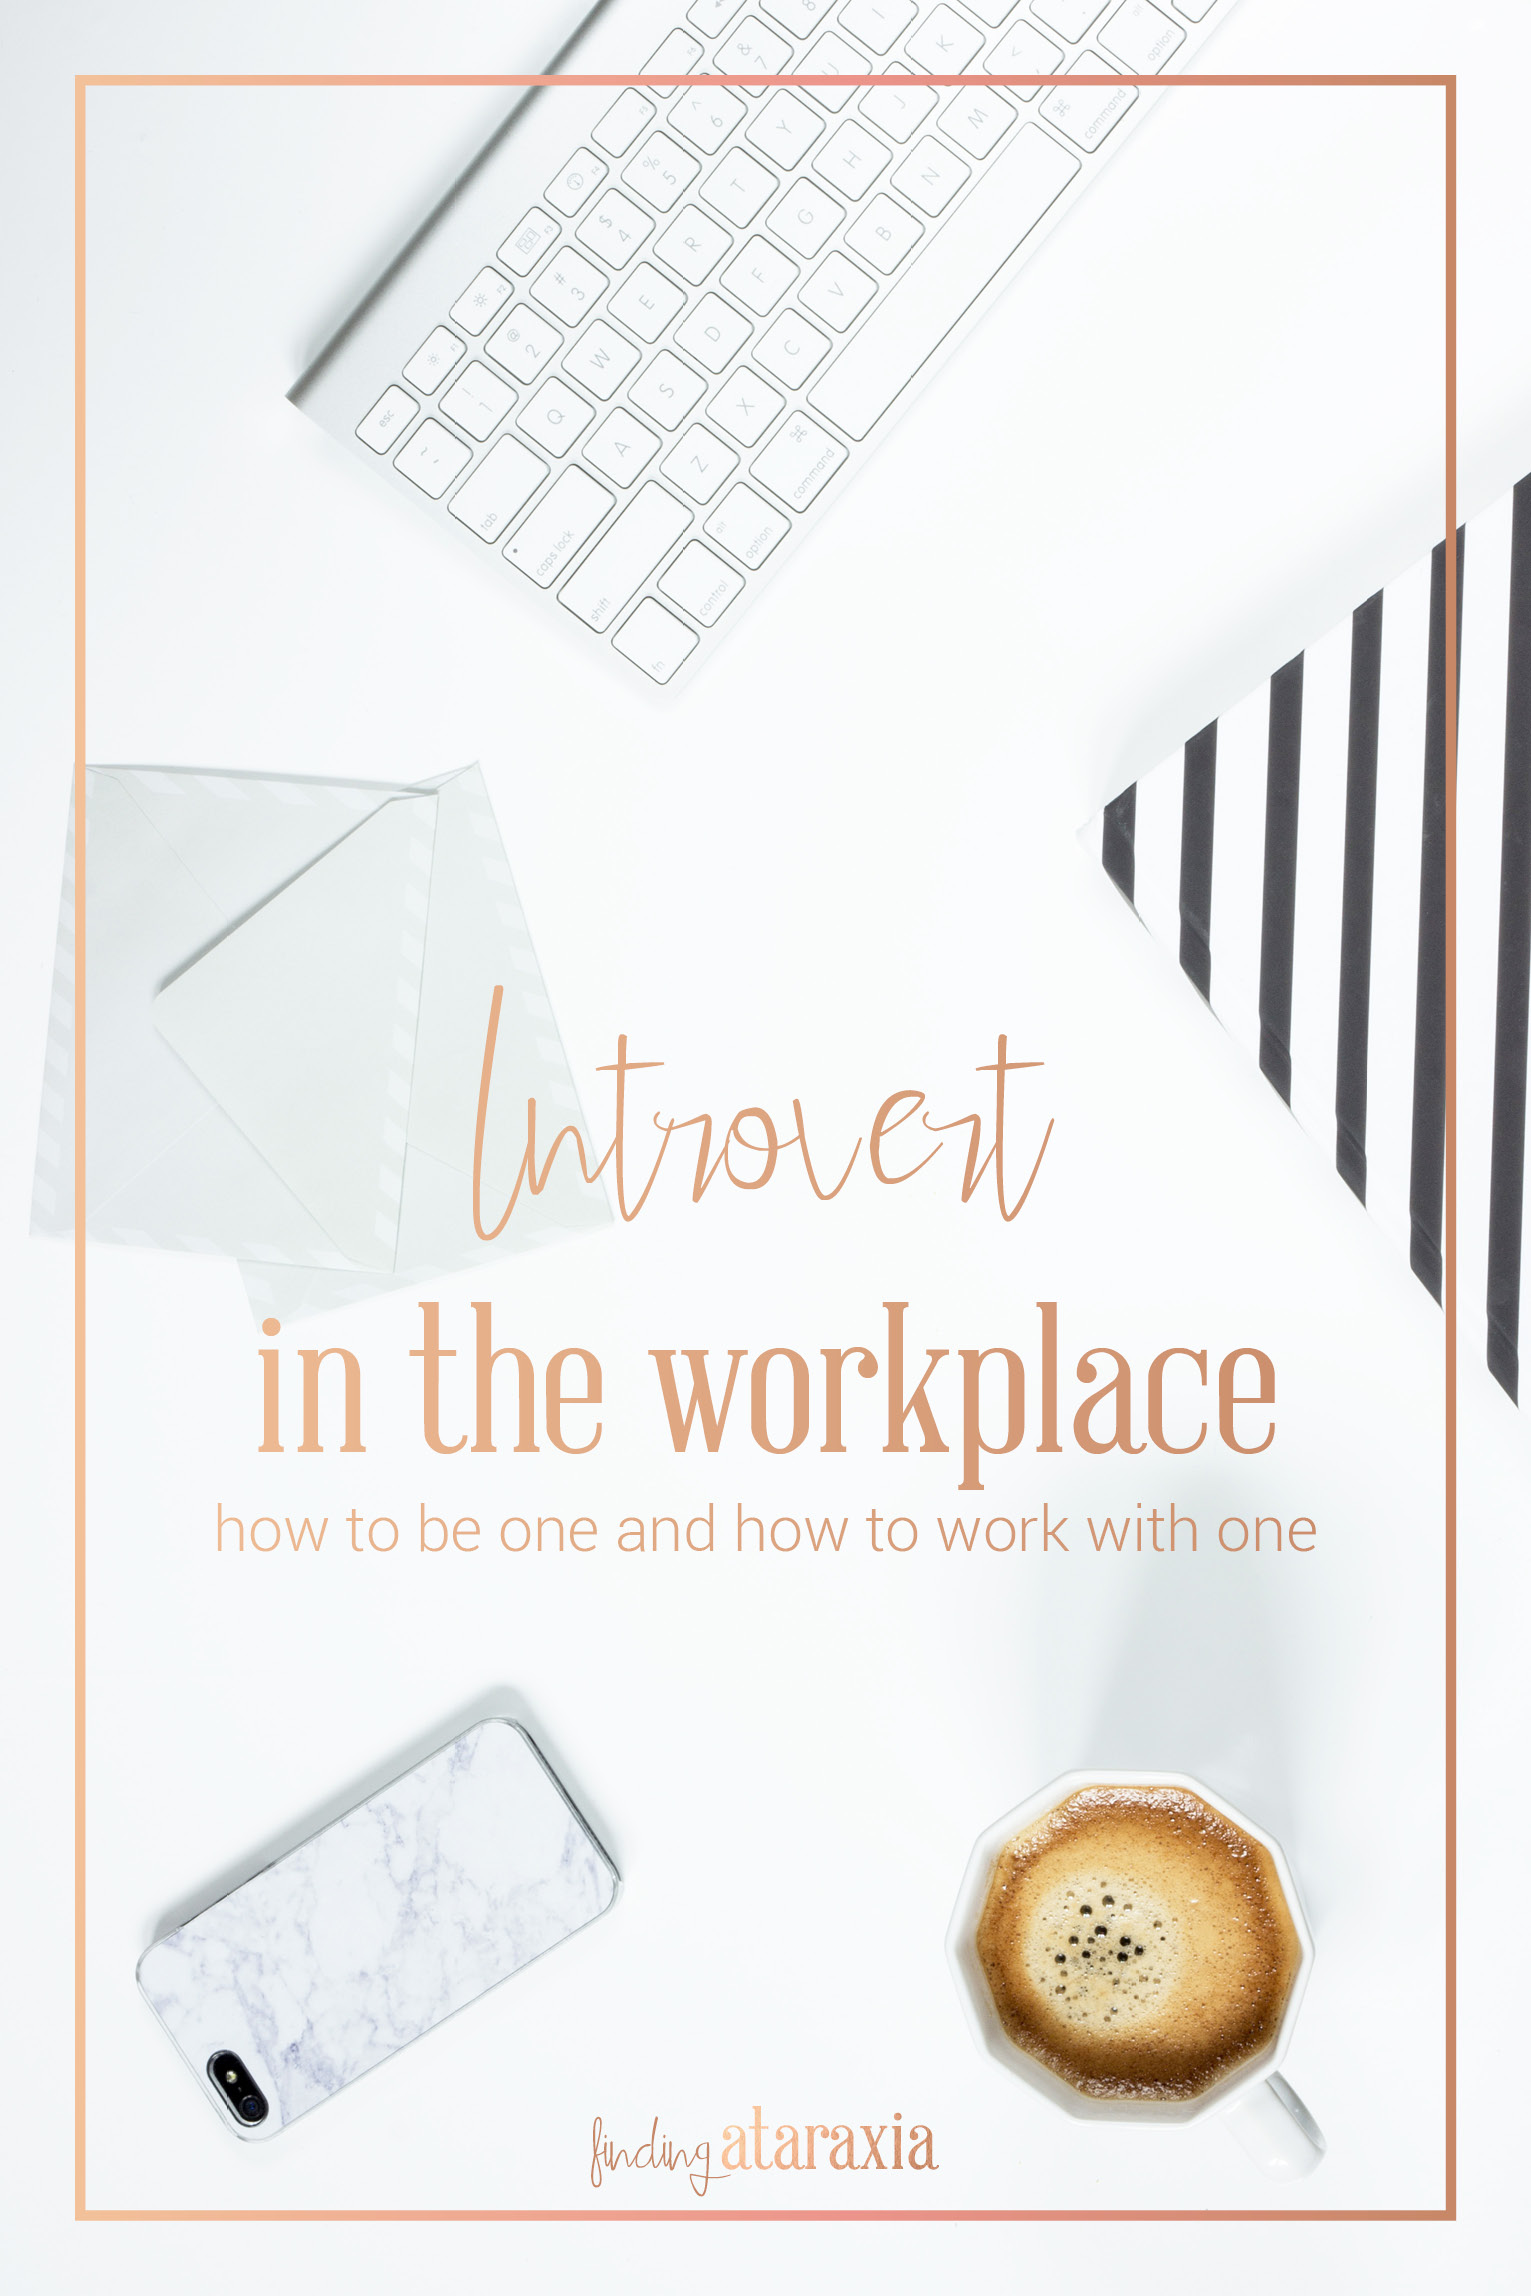 introvert in the workplace